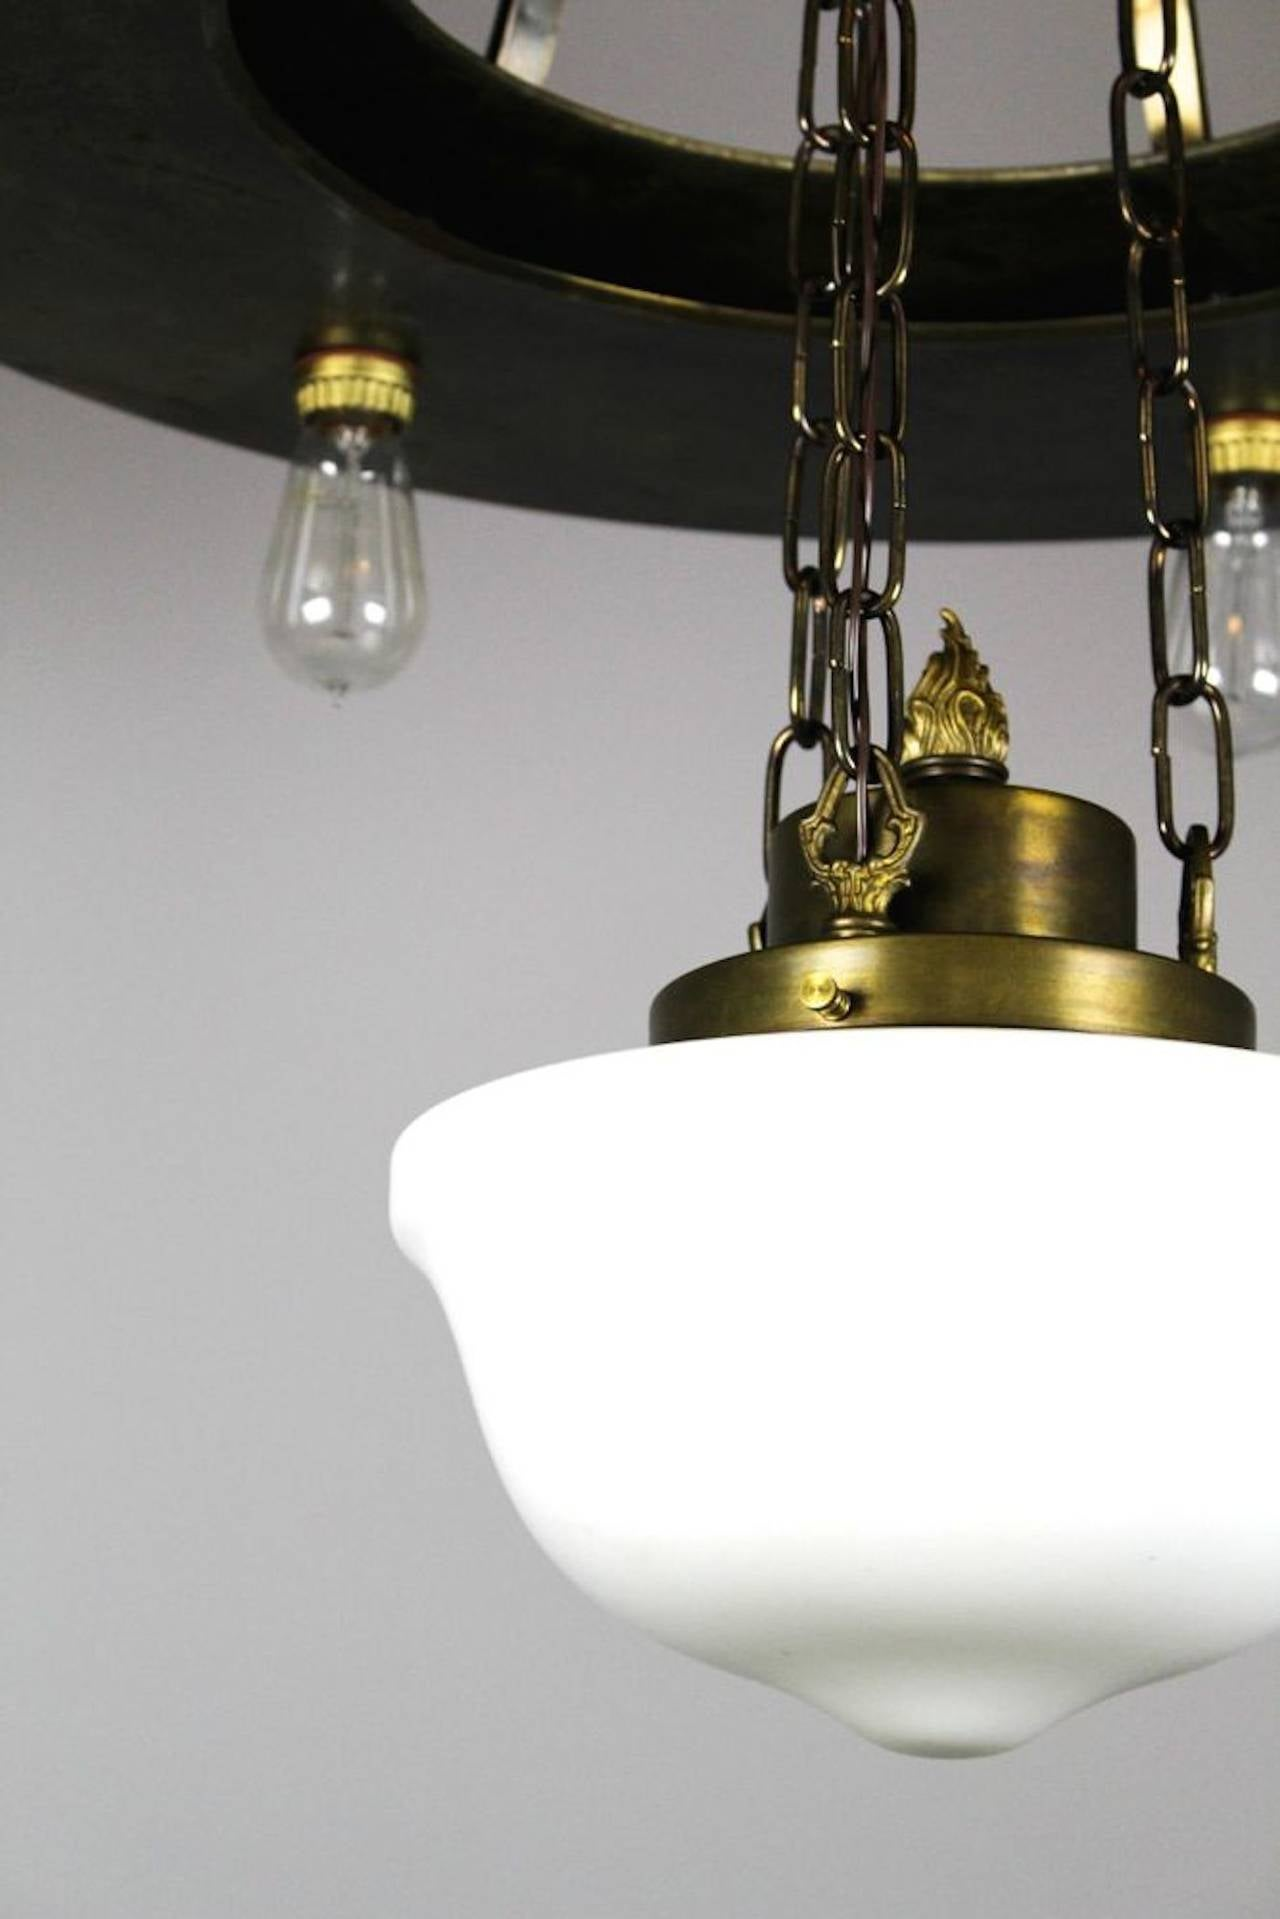 Bare Bulb Light Fixture